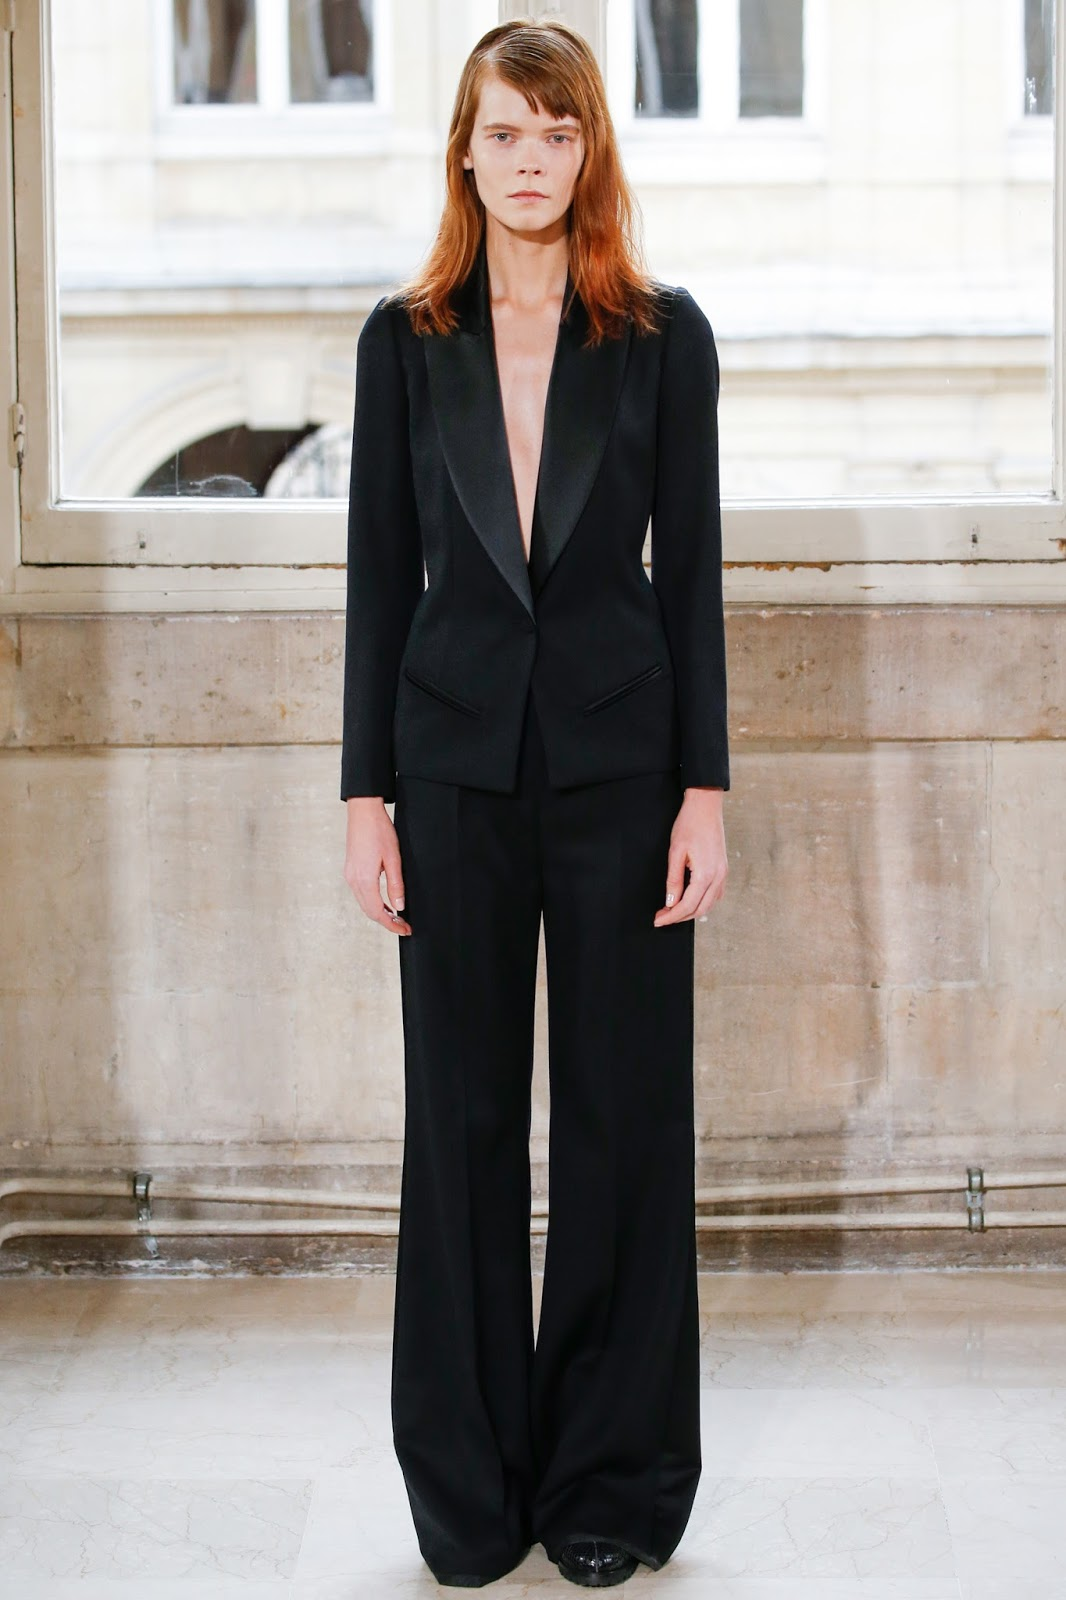 Bouchra Jarrar Spring 2016 Haute Couture Collection No. 13 via www.fashionedbylove.co.uk